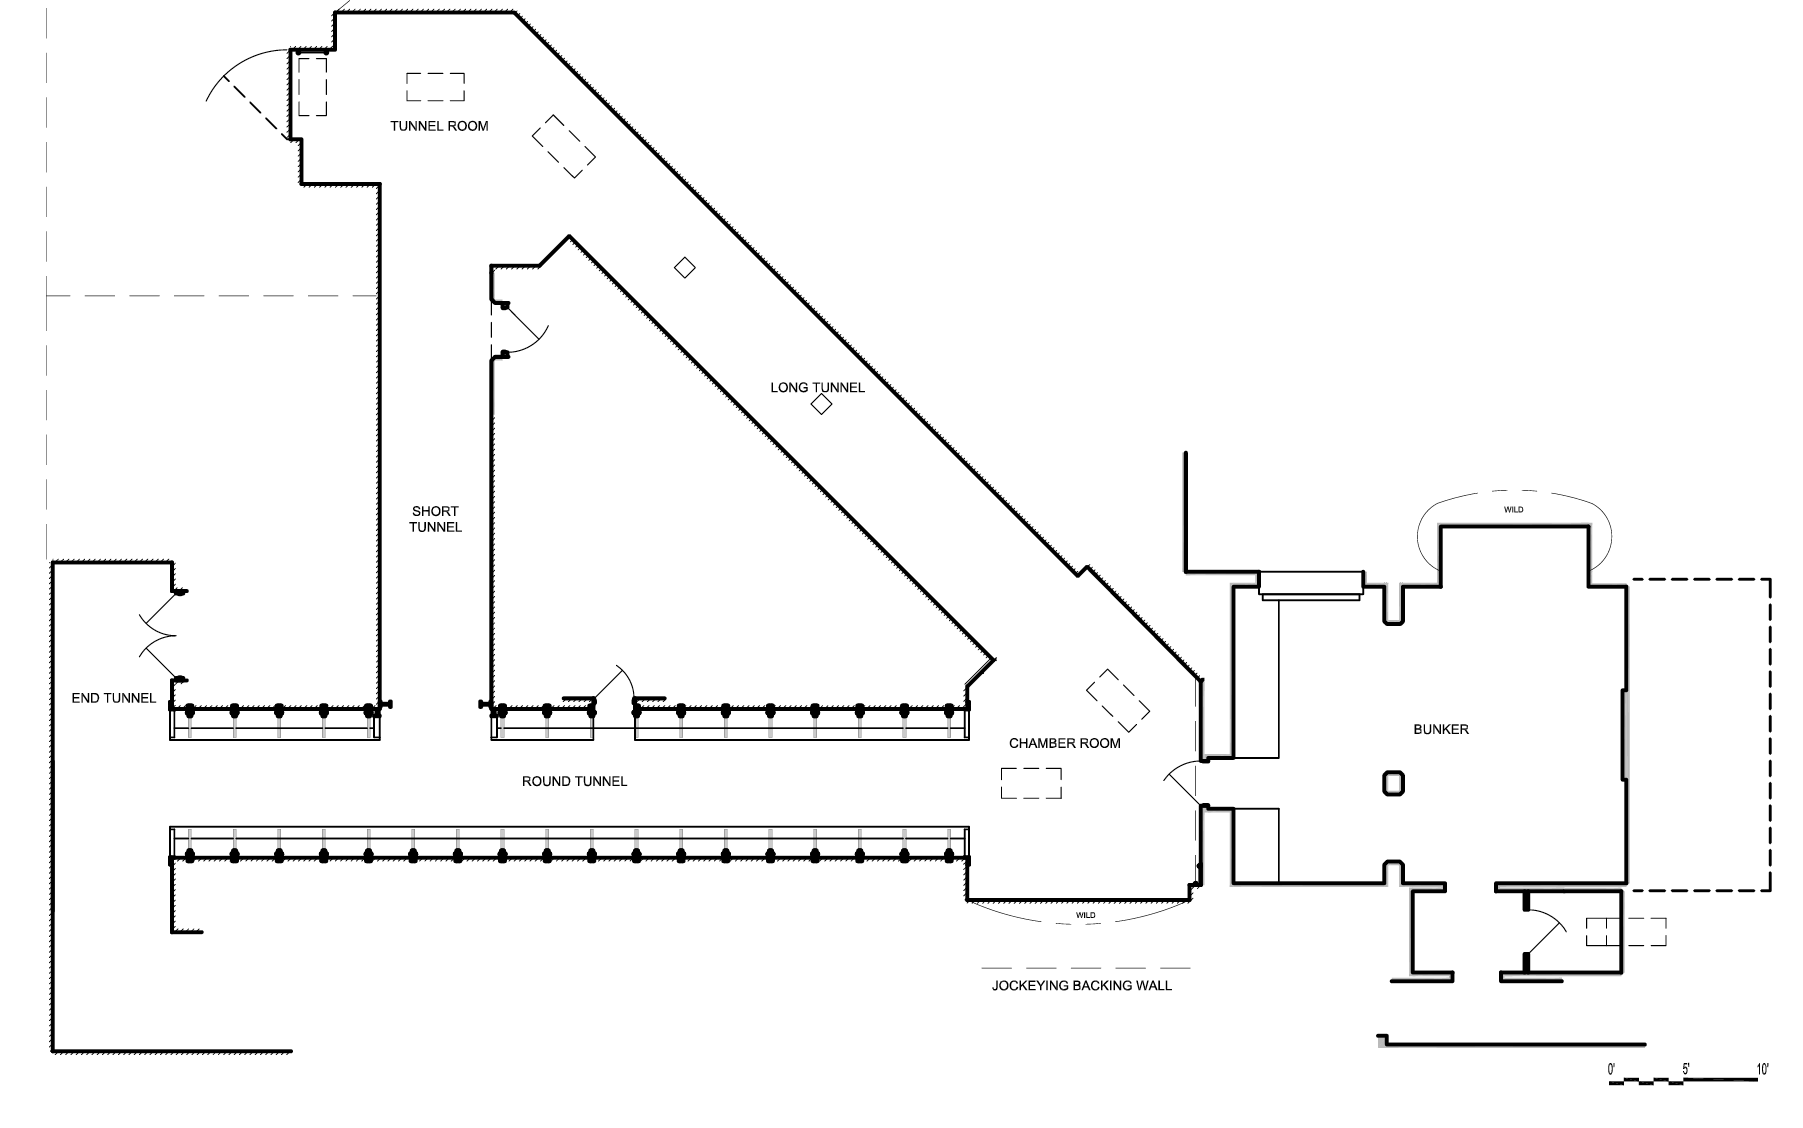 Capital Arts Set, Tunnel Director's Plan